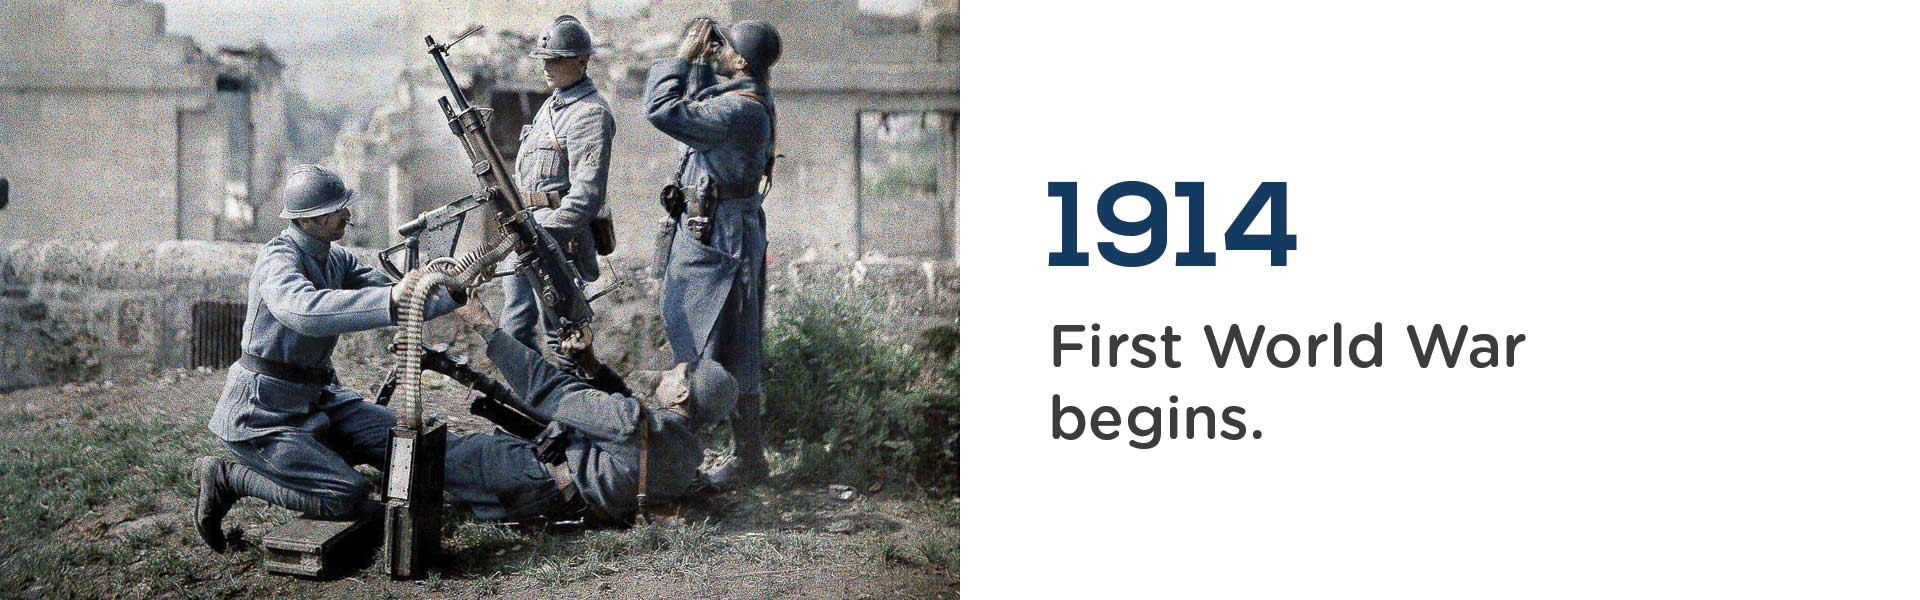 The First World War begins in 1914.Wrigley Claydon Solicitors, Trusted for 200 years